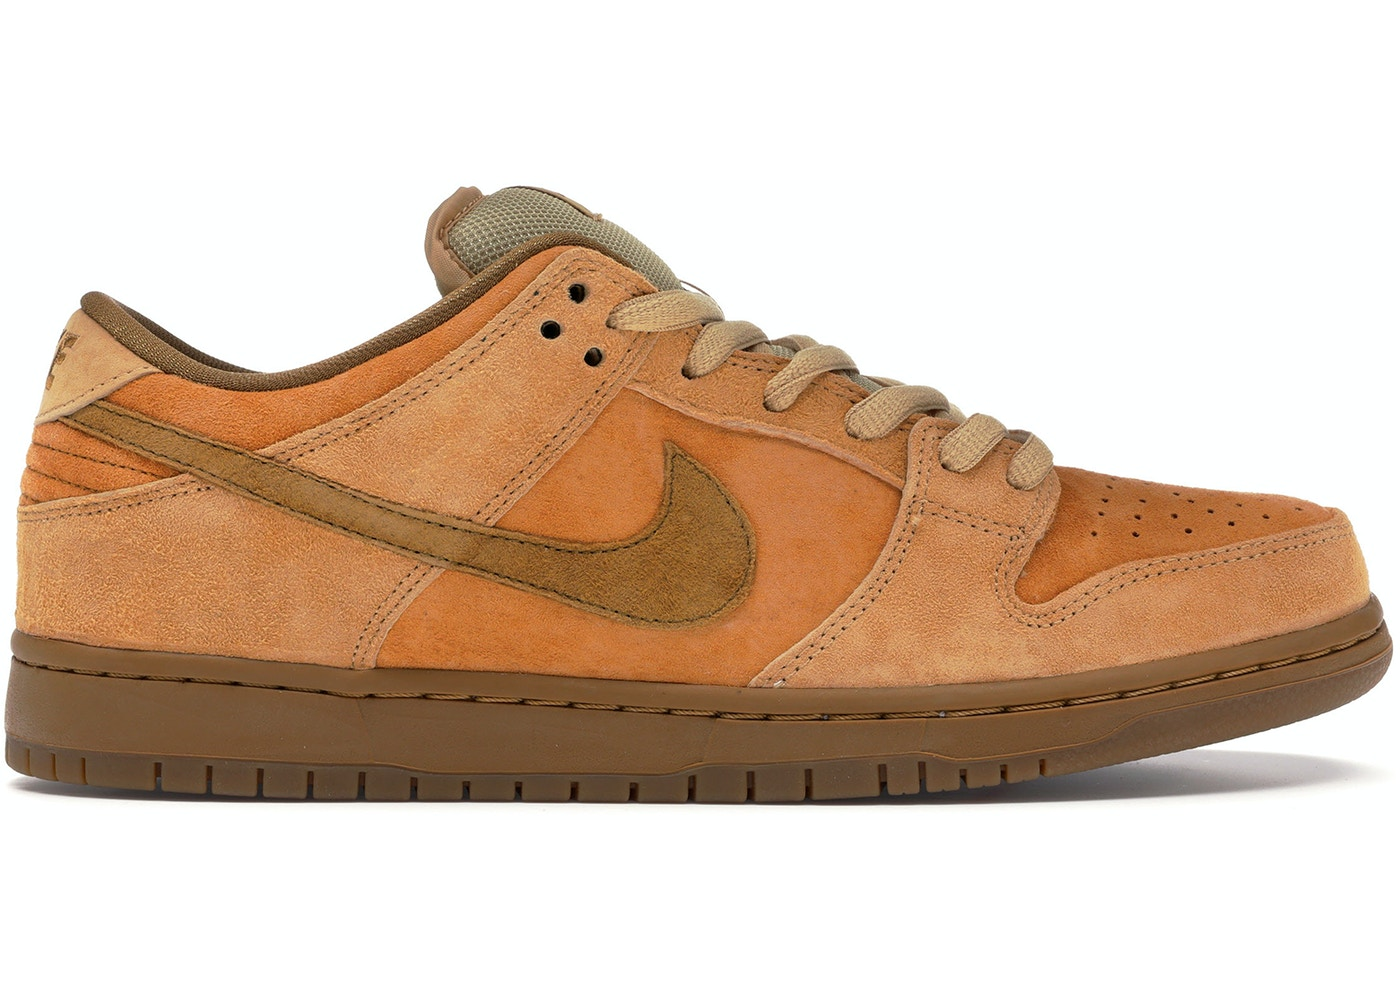 finest selection 94d5f 50a72 Nike SB Dunk Low Wheat